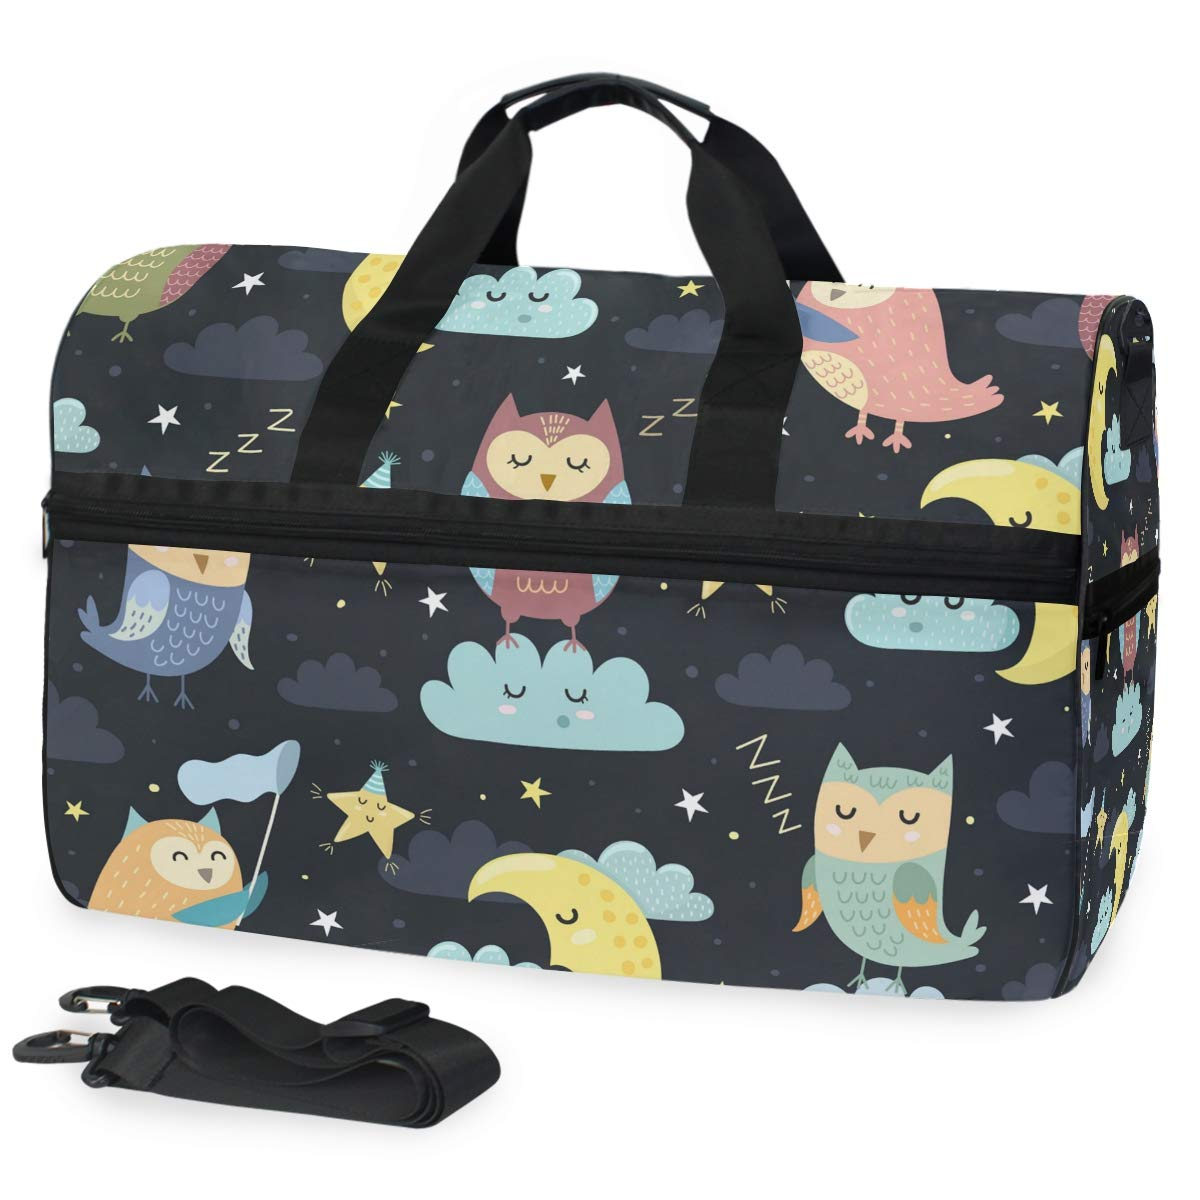 Hunihuni Duffel Bag,Animal Owl Pattern Travel Luggage Bag